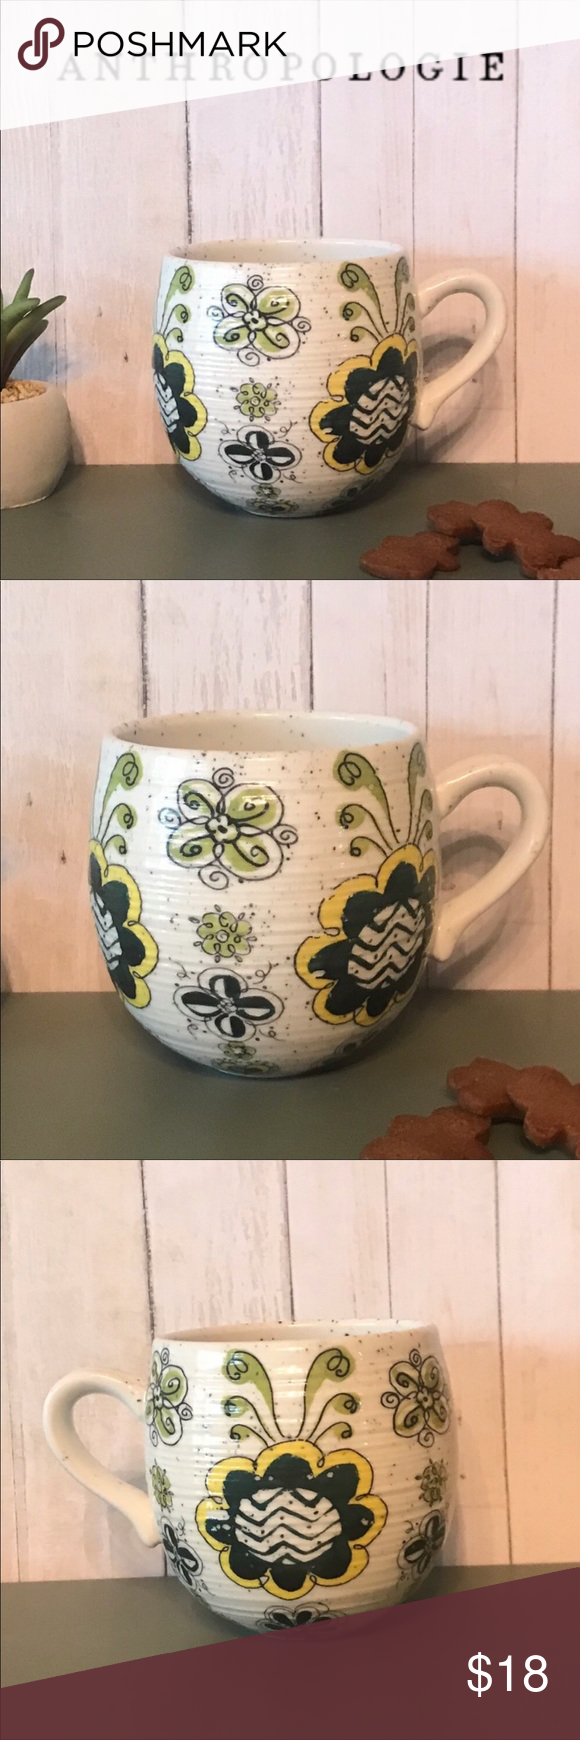 Anthropologie Biscuit Floral Mug Yellow mugs, Mugs